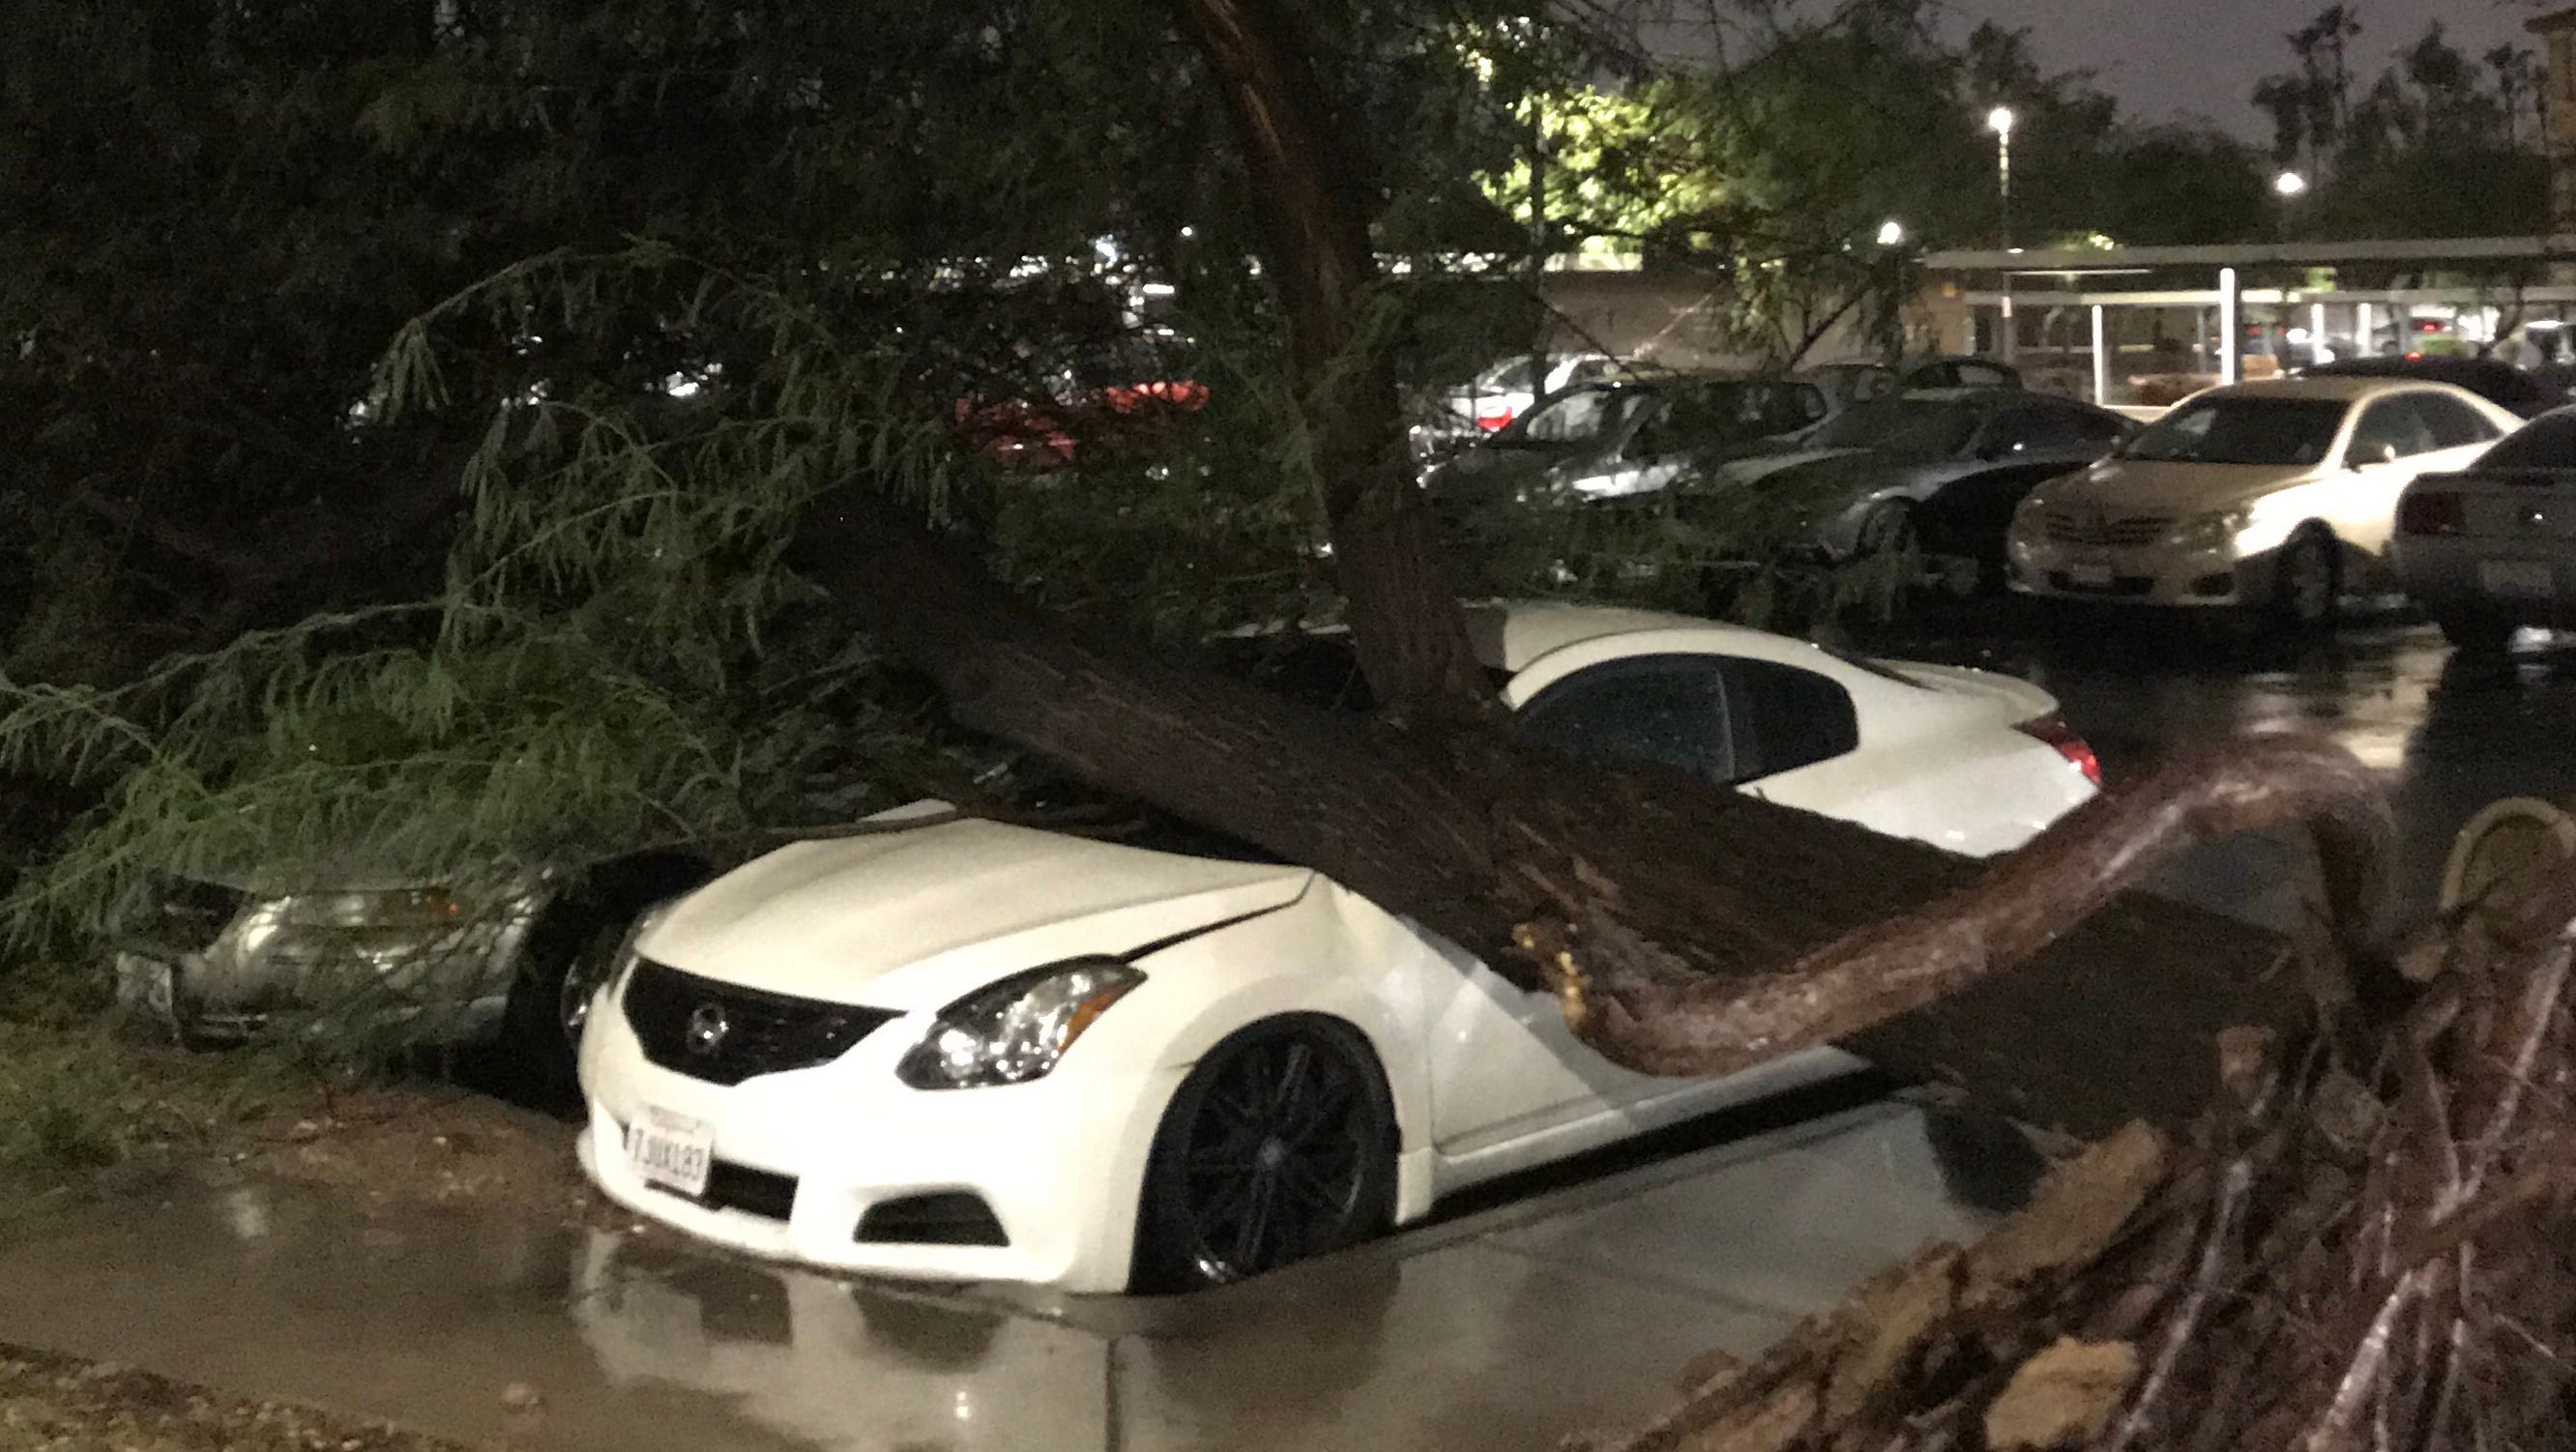 Road closures, cleanup continue after strong monsoon storm pummels Phoenix area